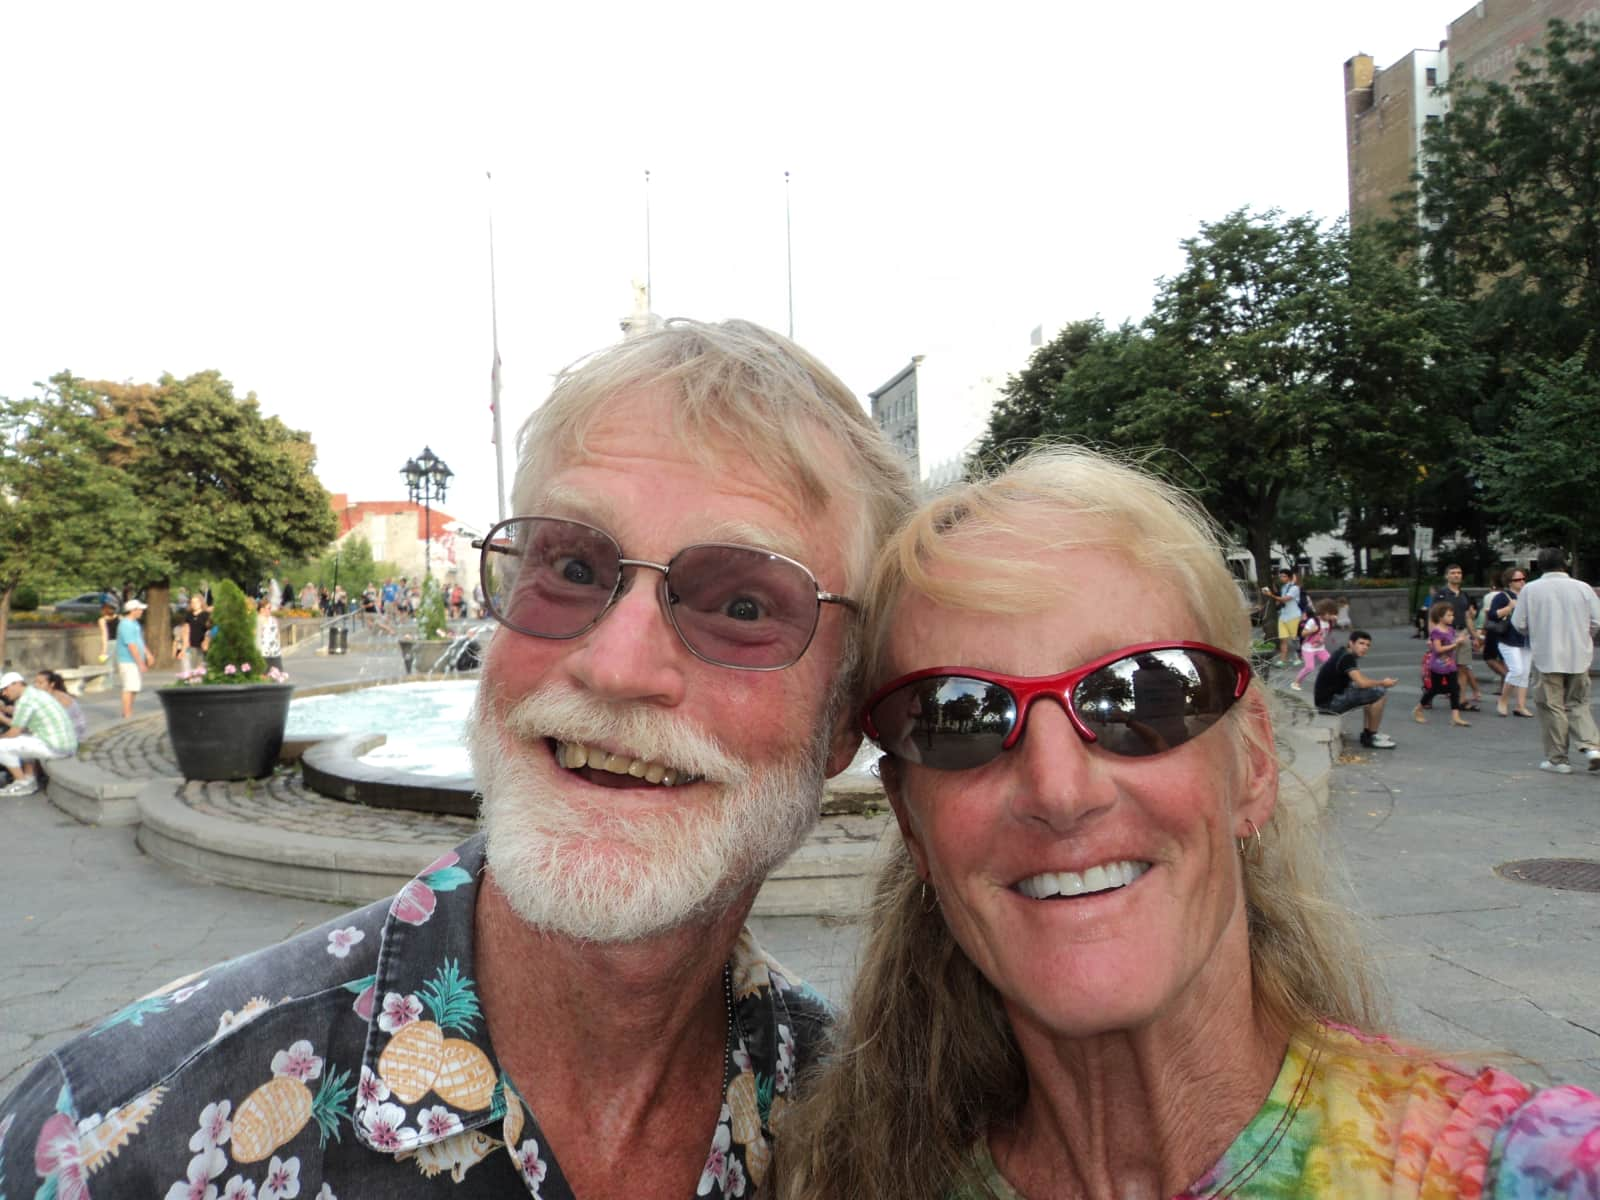 John & Mary from Traverse City, Michigan, United States